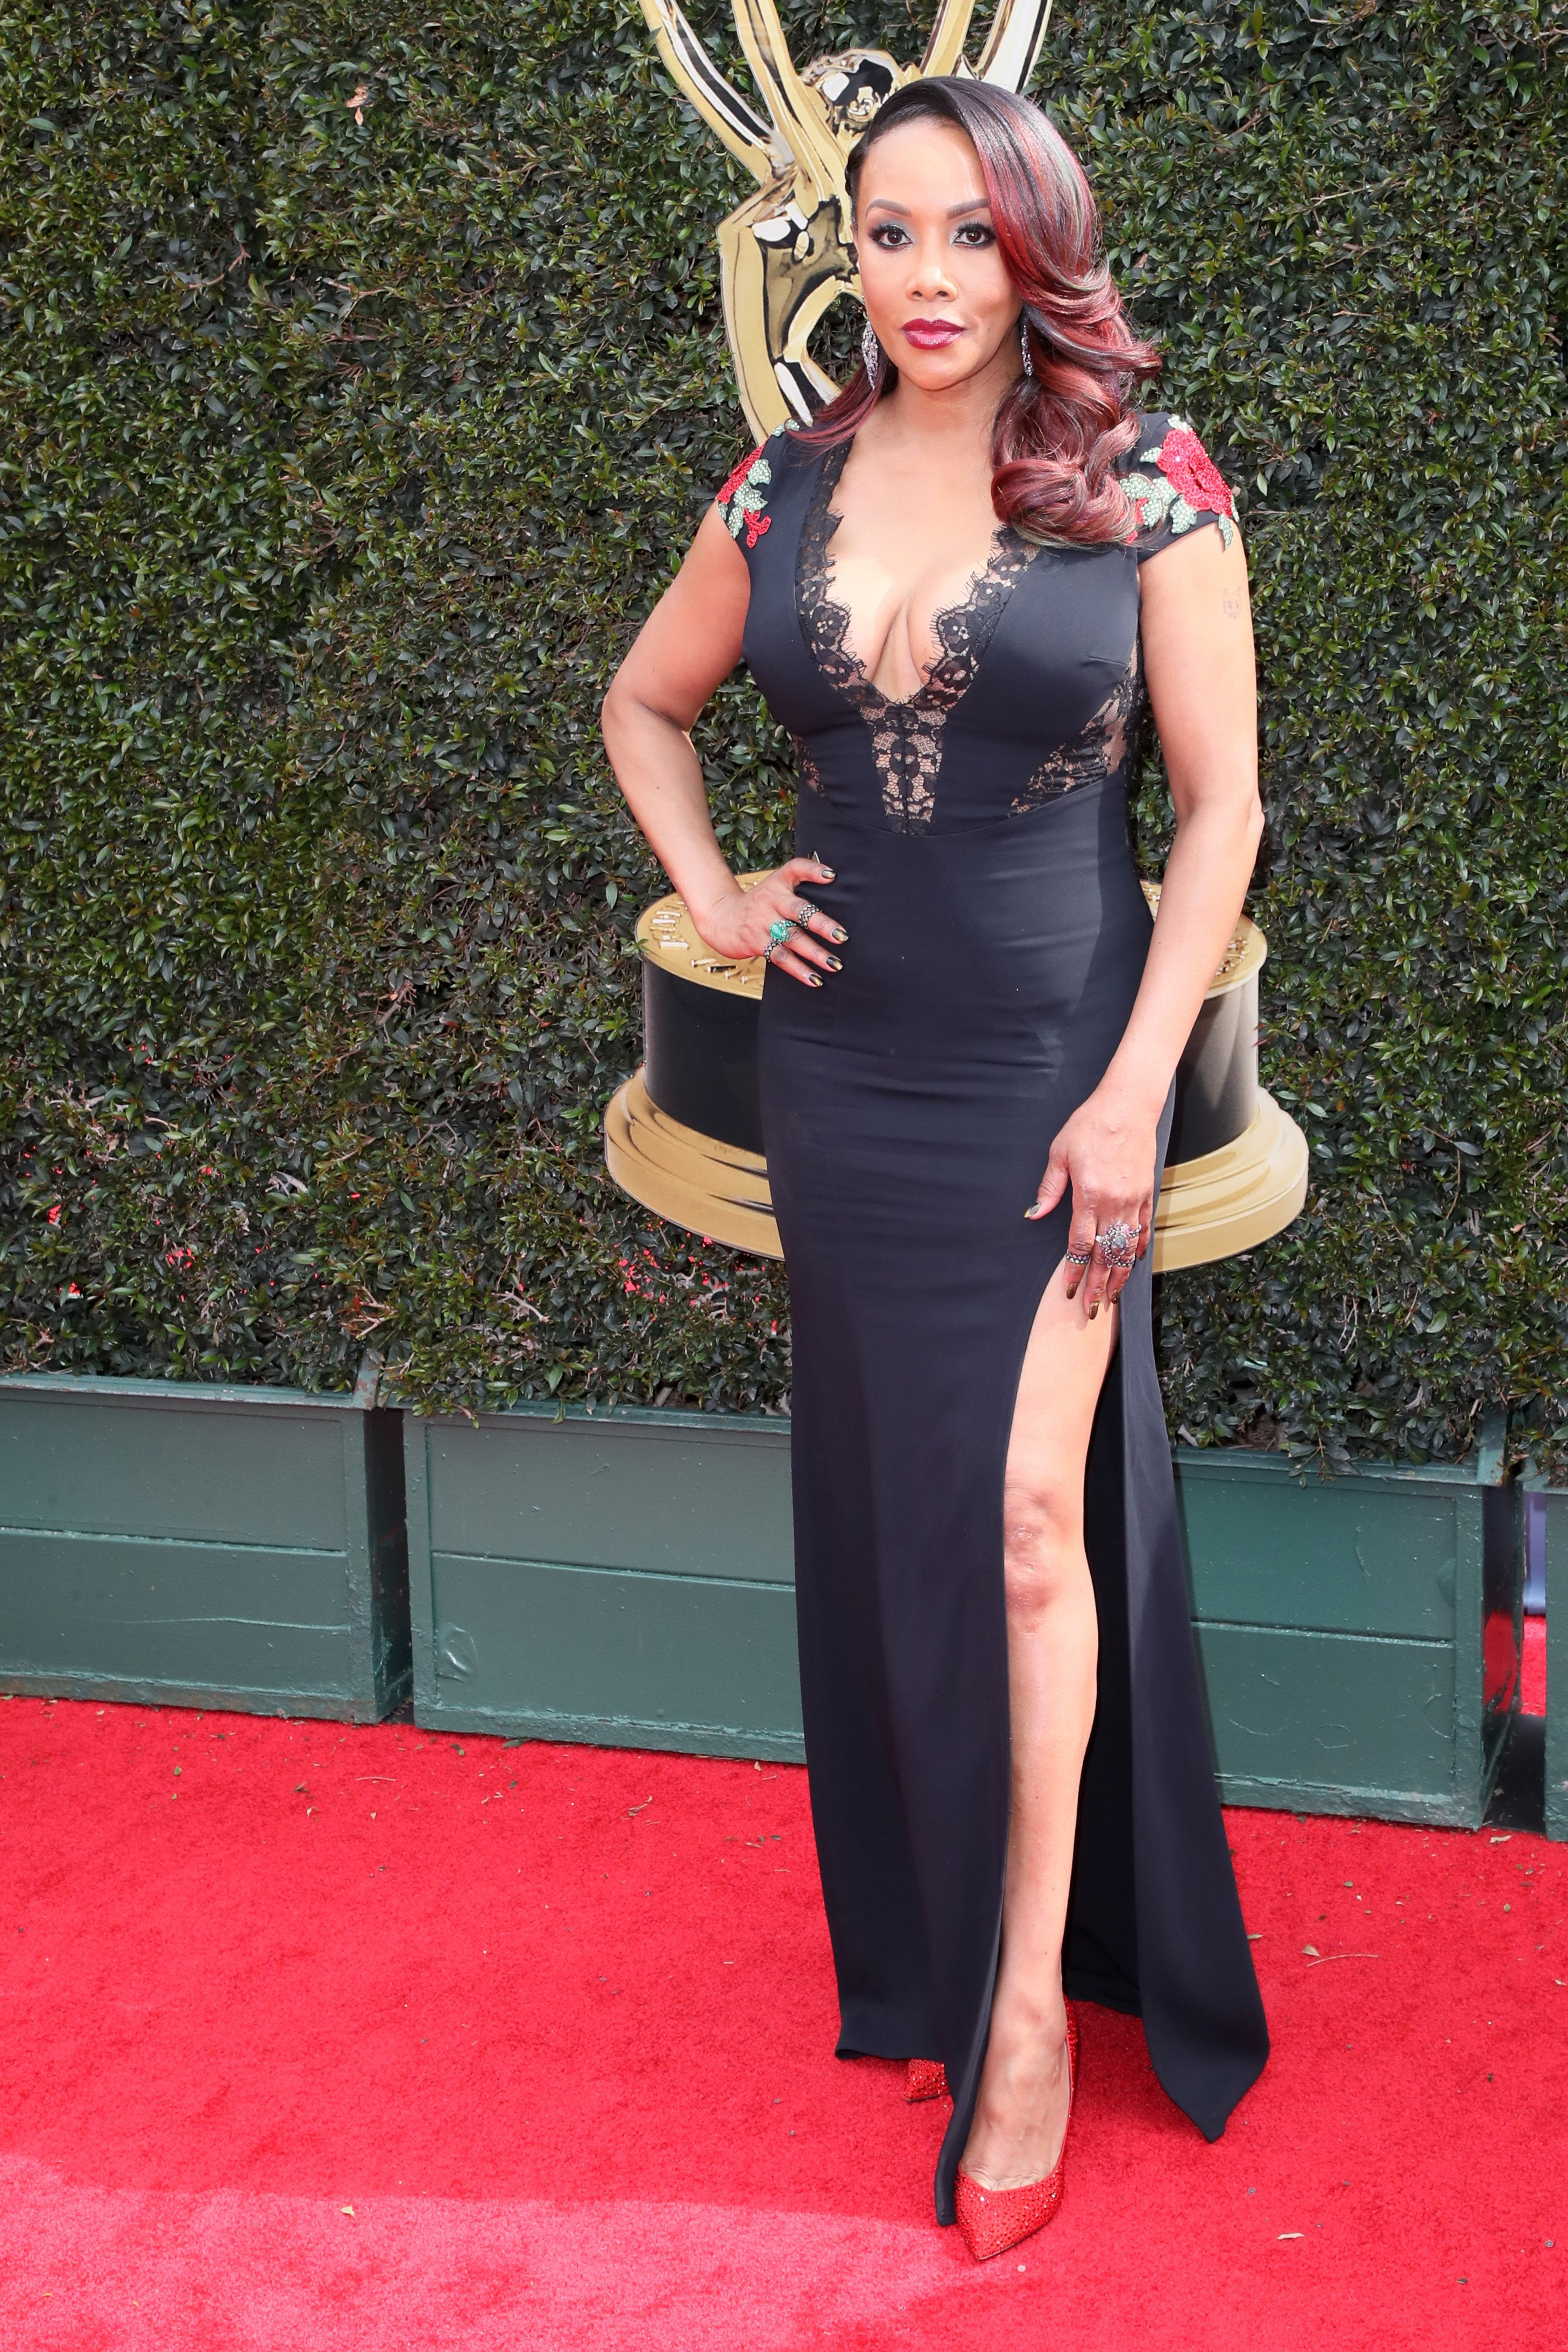 Vivica A. Fox at the 45th annual Daytime Emmy Awards, 2018 in Pasadena, California | Source: Getty Images